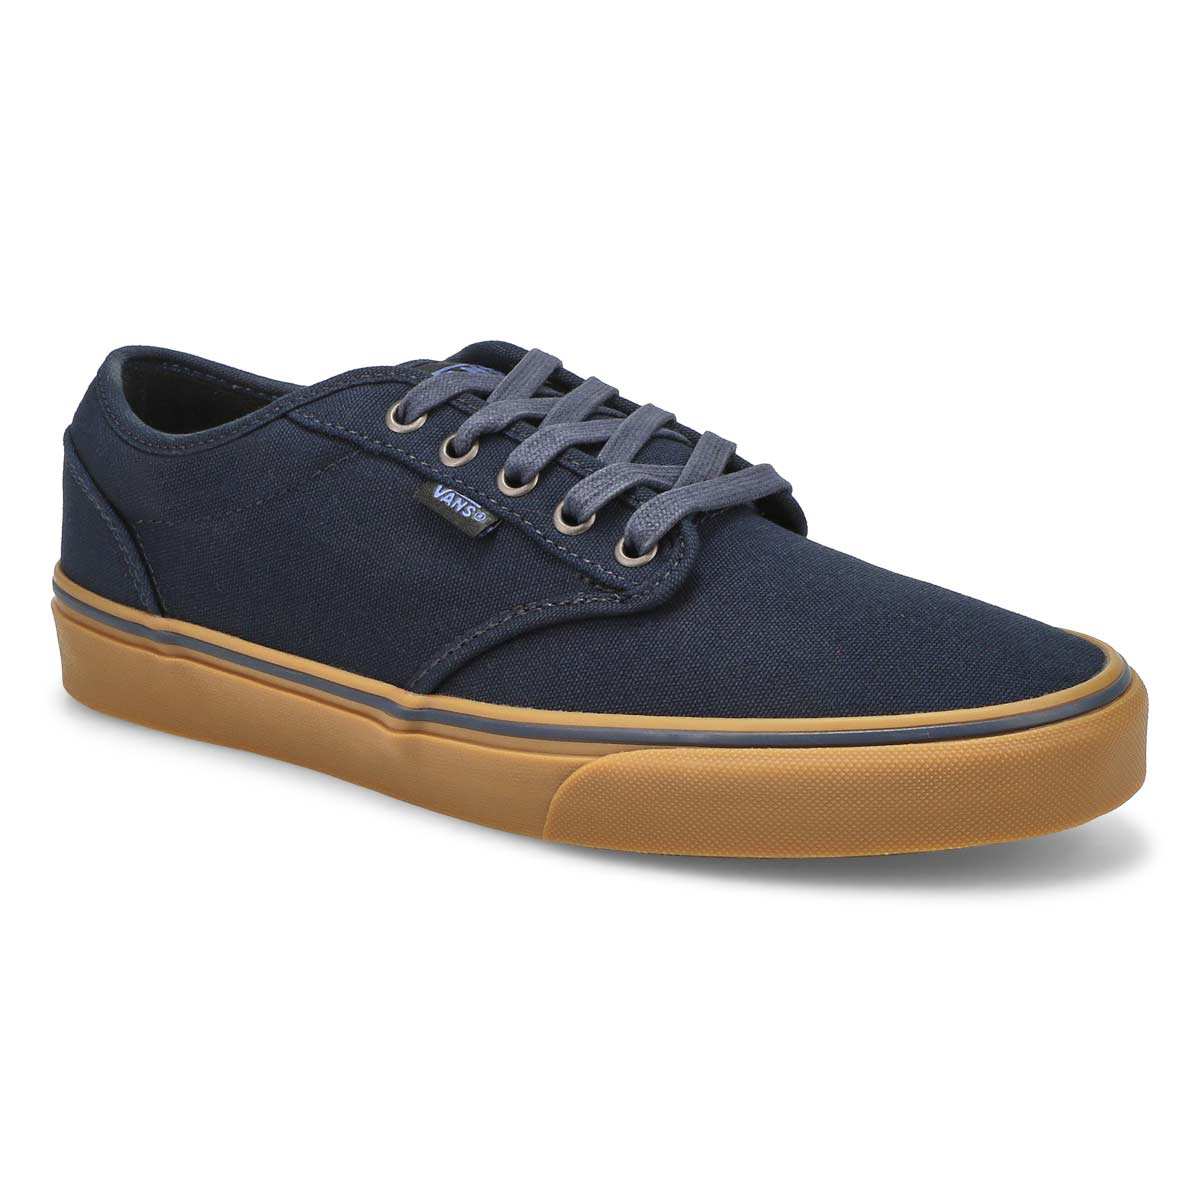 79acc713a4a6 Vans. Atwood. Men s ATWOOD navy canvas lace up sneakers